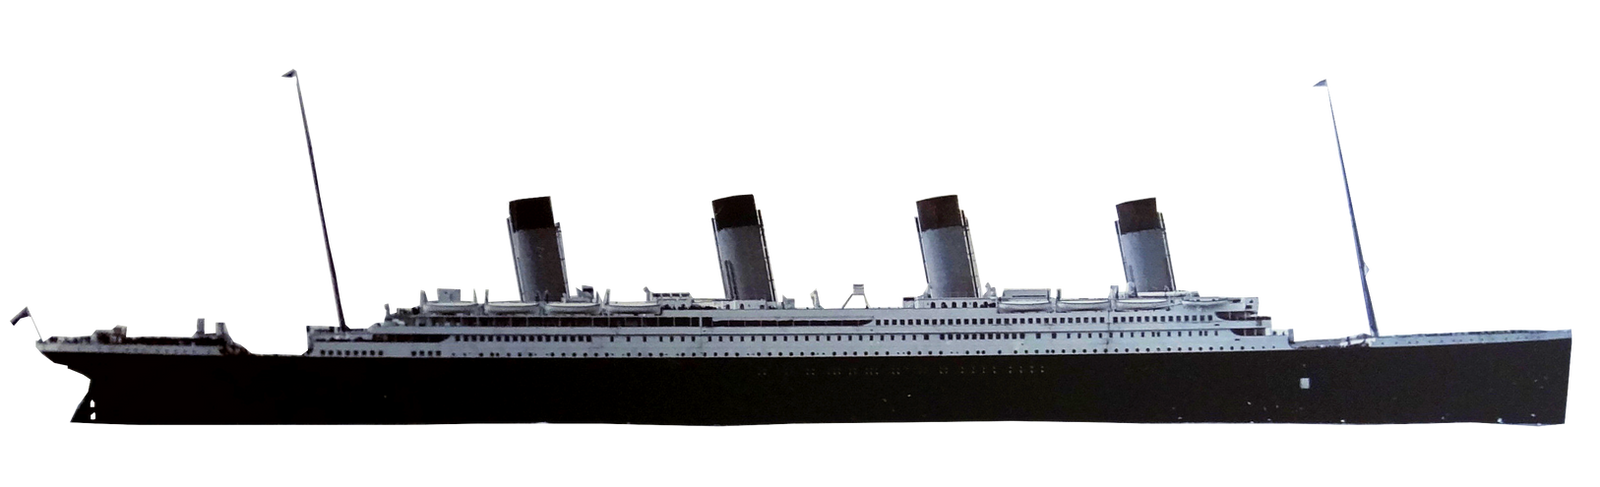 Rms Olympic Vs Rms Titanic Www Imgkid Com The Image